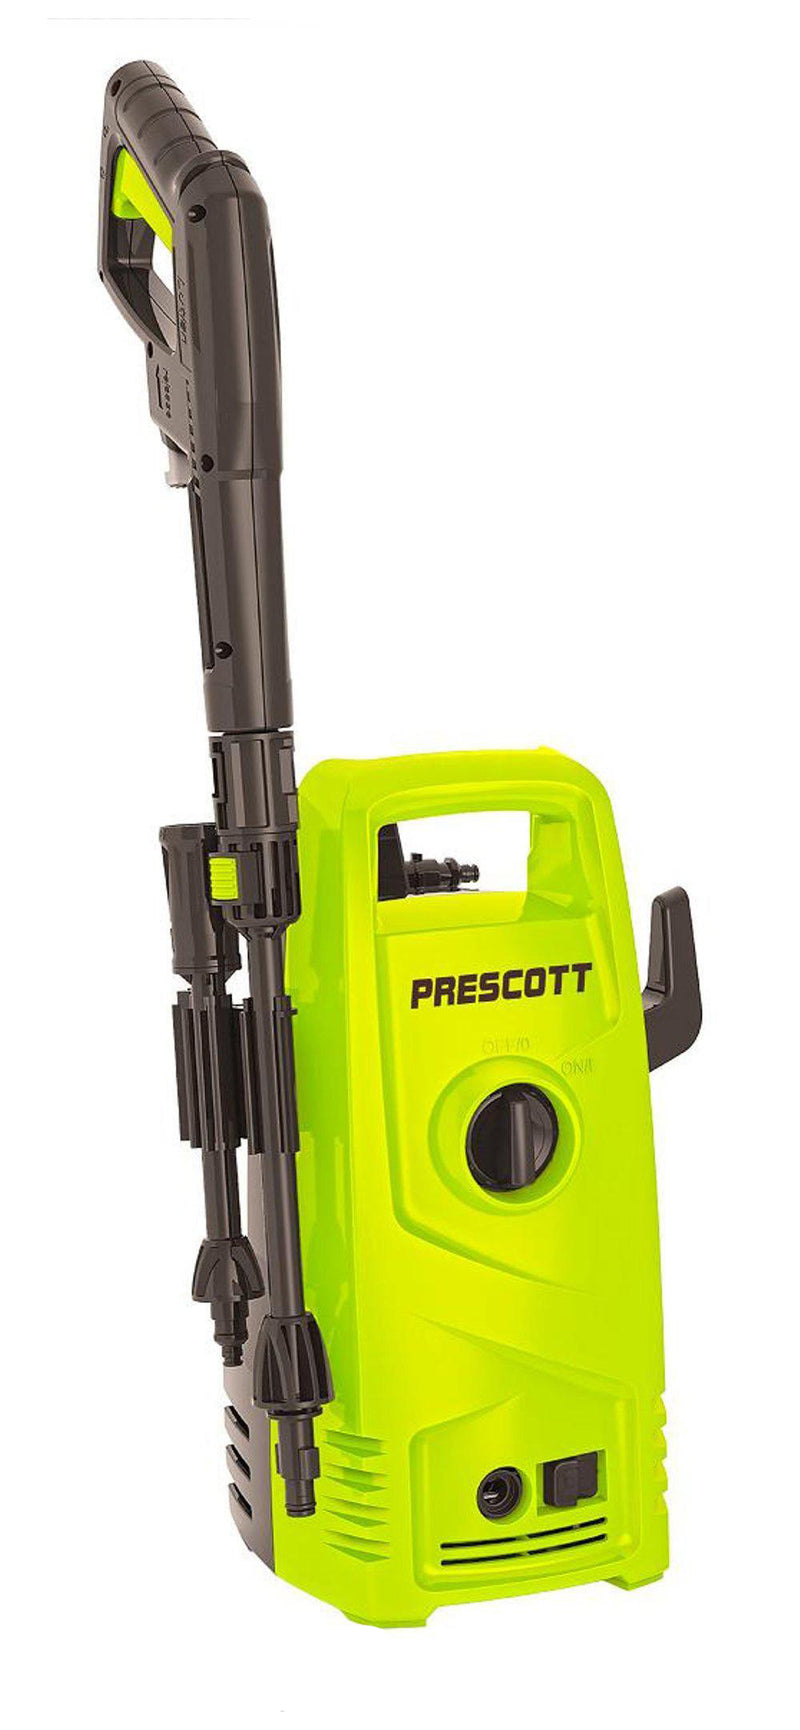 Prescott High Pressure Washer 80Bar P-JW18+ / QUICK